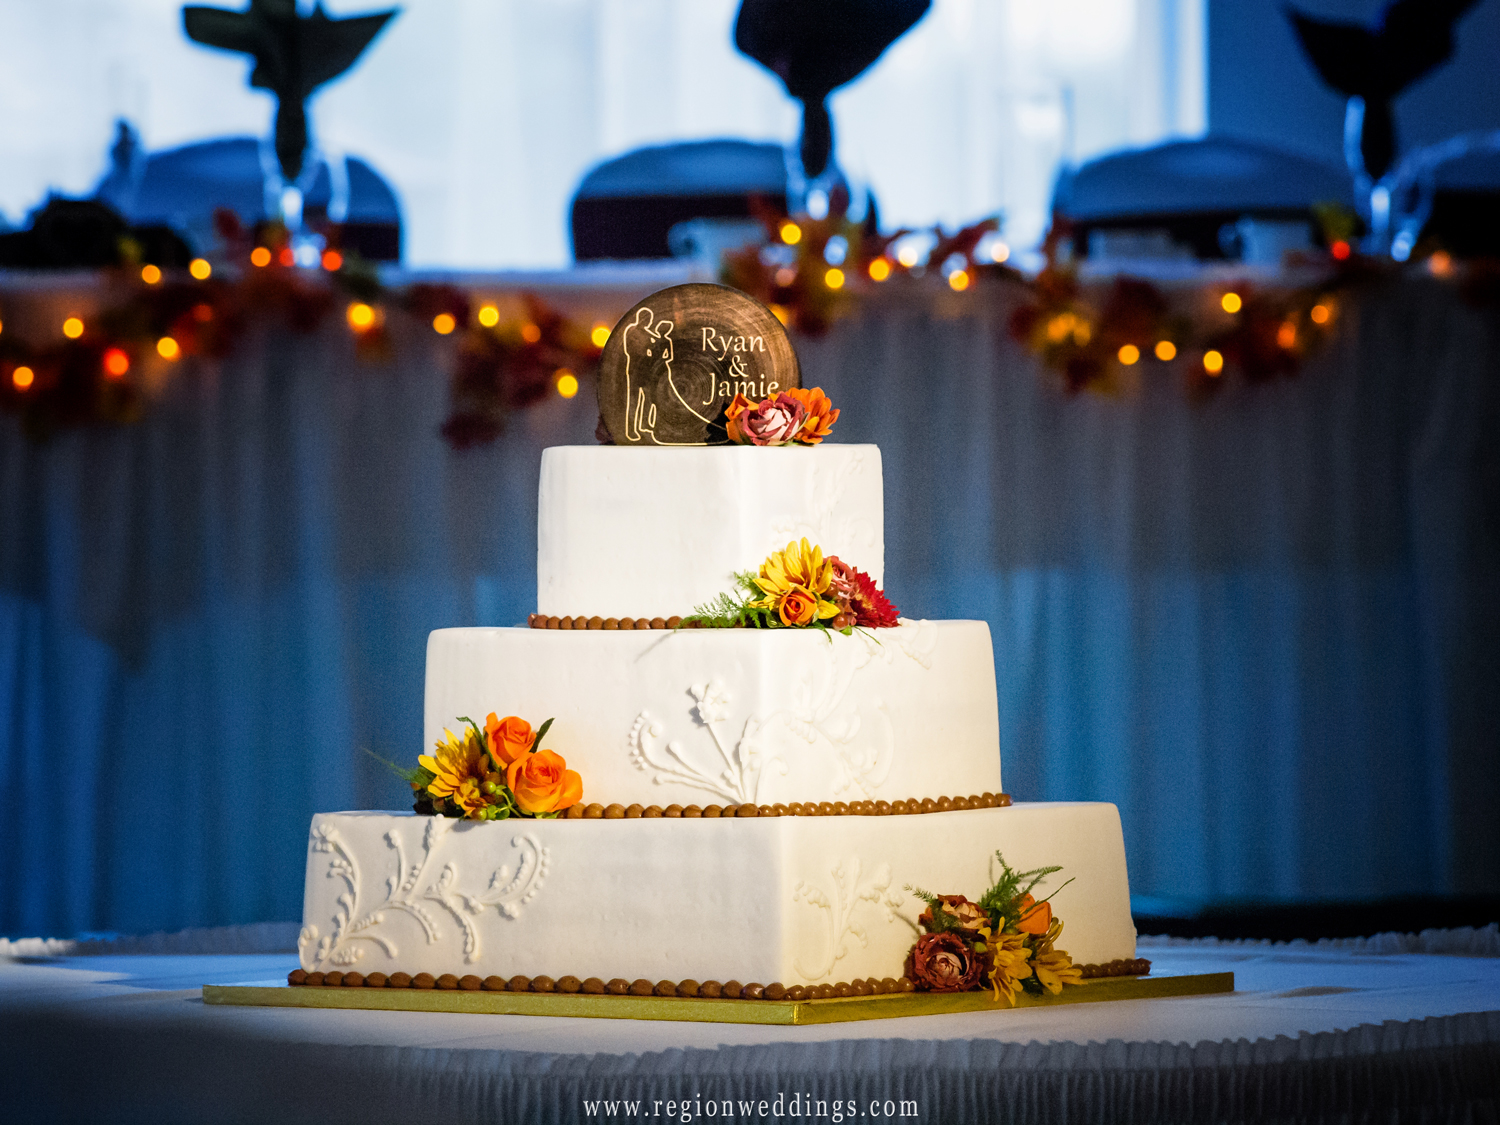 Wedding cake decorated for the Fall season awaits wedding guests at The Patrician in Schererville, Indiana.